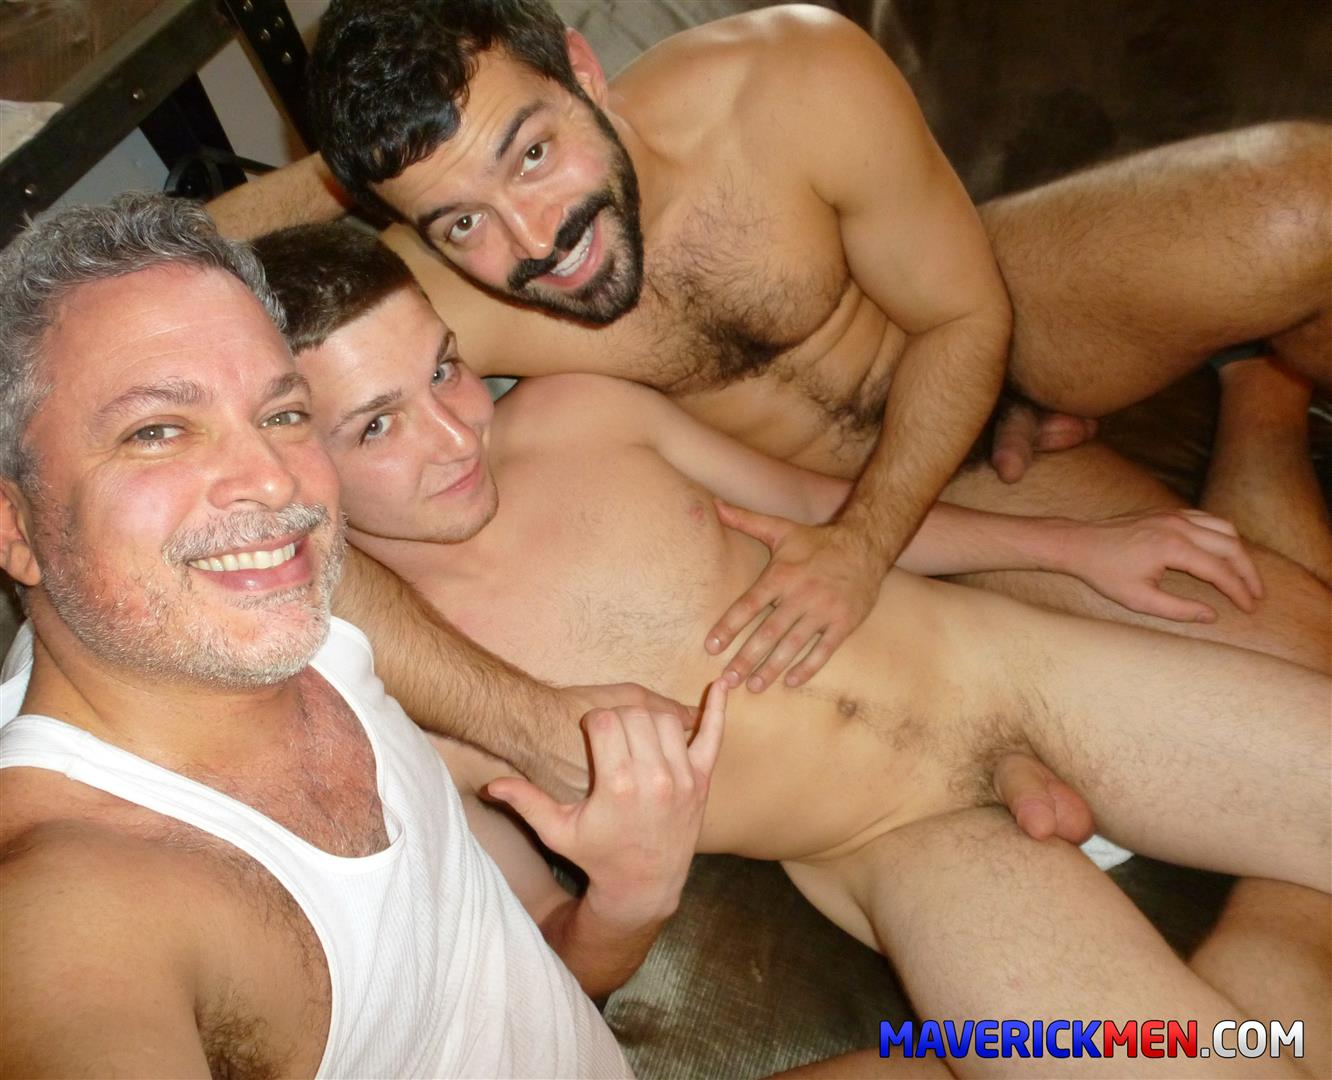 The Maverick Men Tom Hairy Twink Getting Fucked By Two Muscle Daddies Bareback BBBH Amateur Gay Porn 17